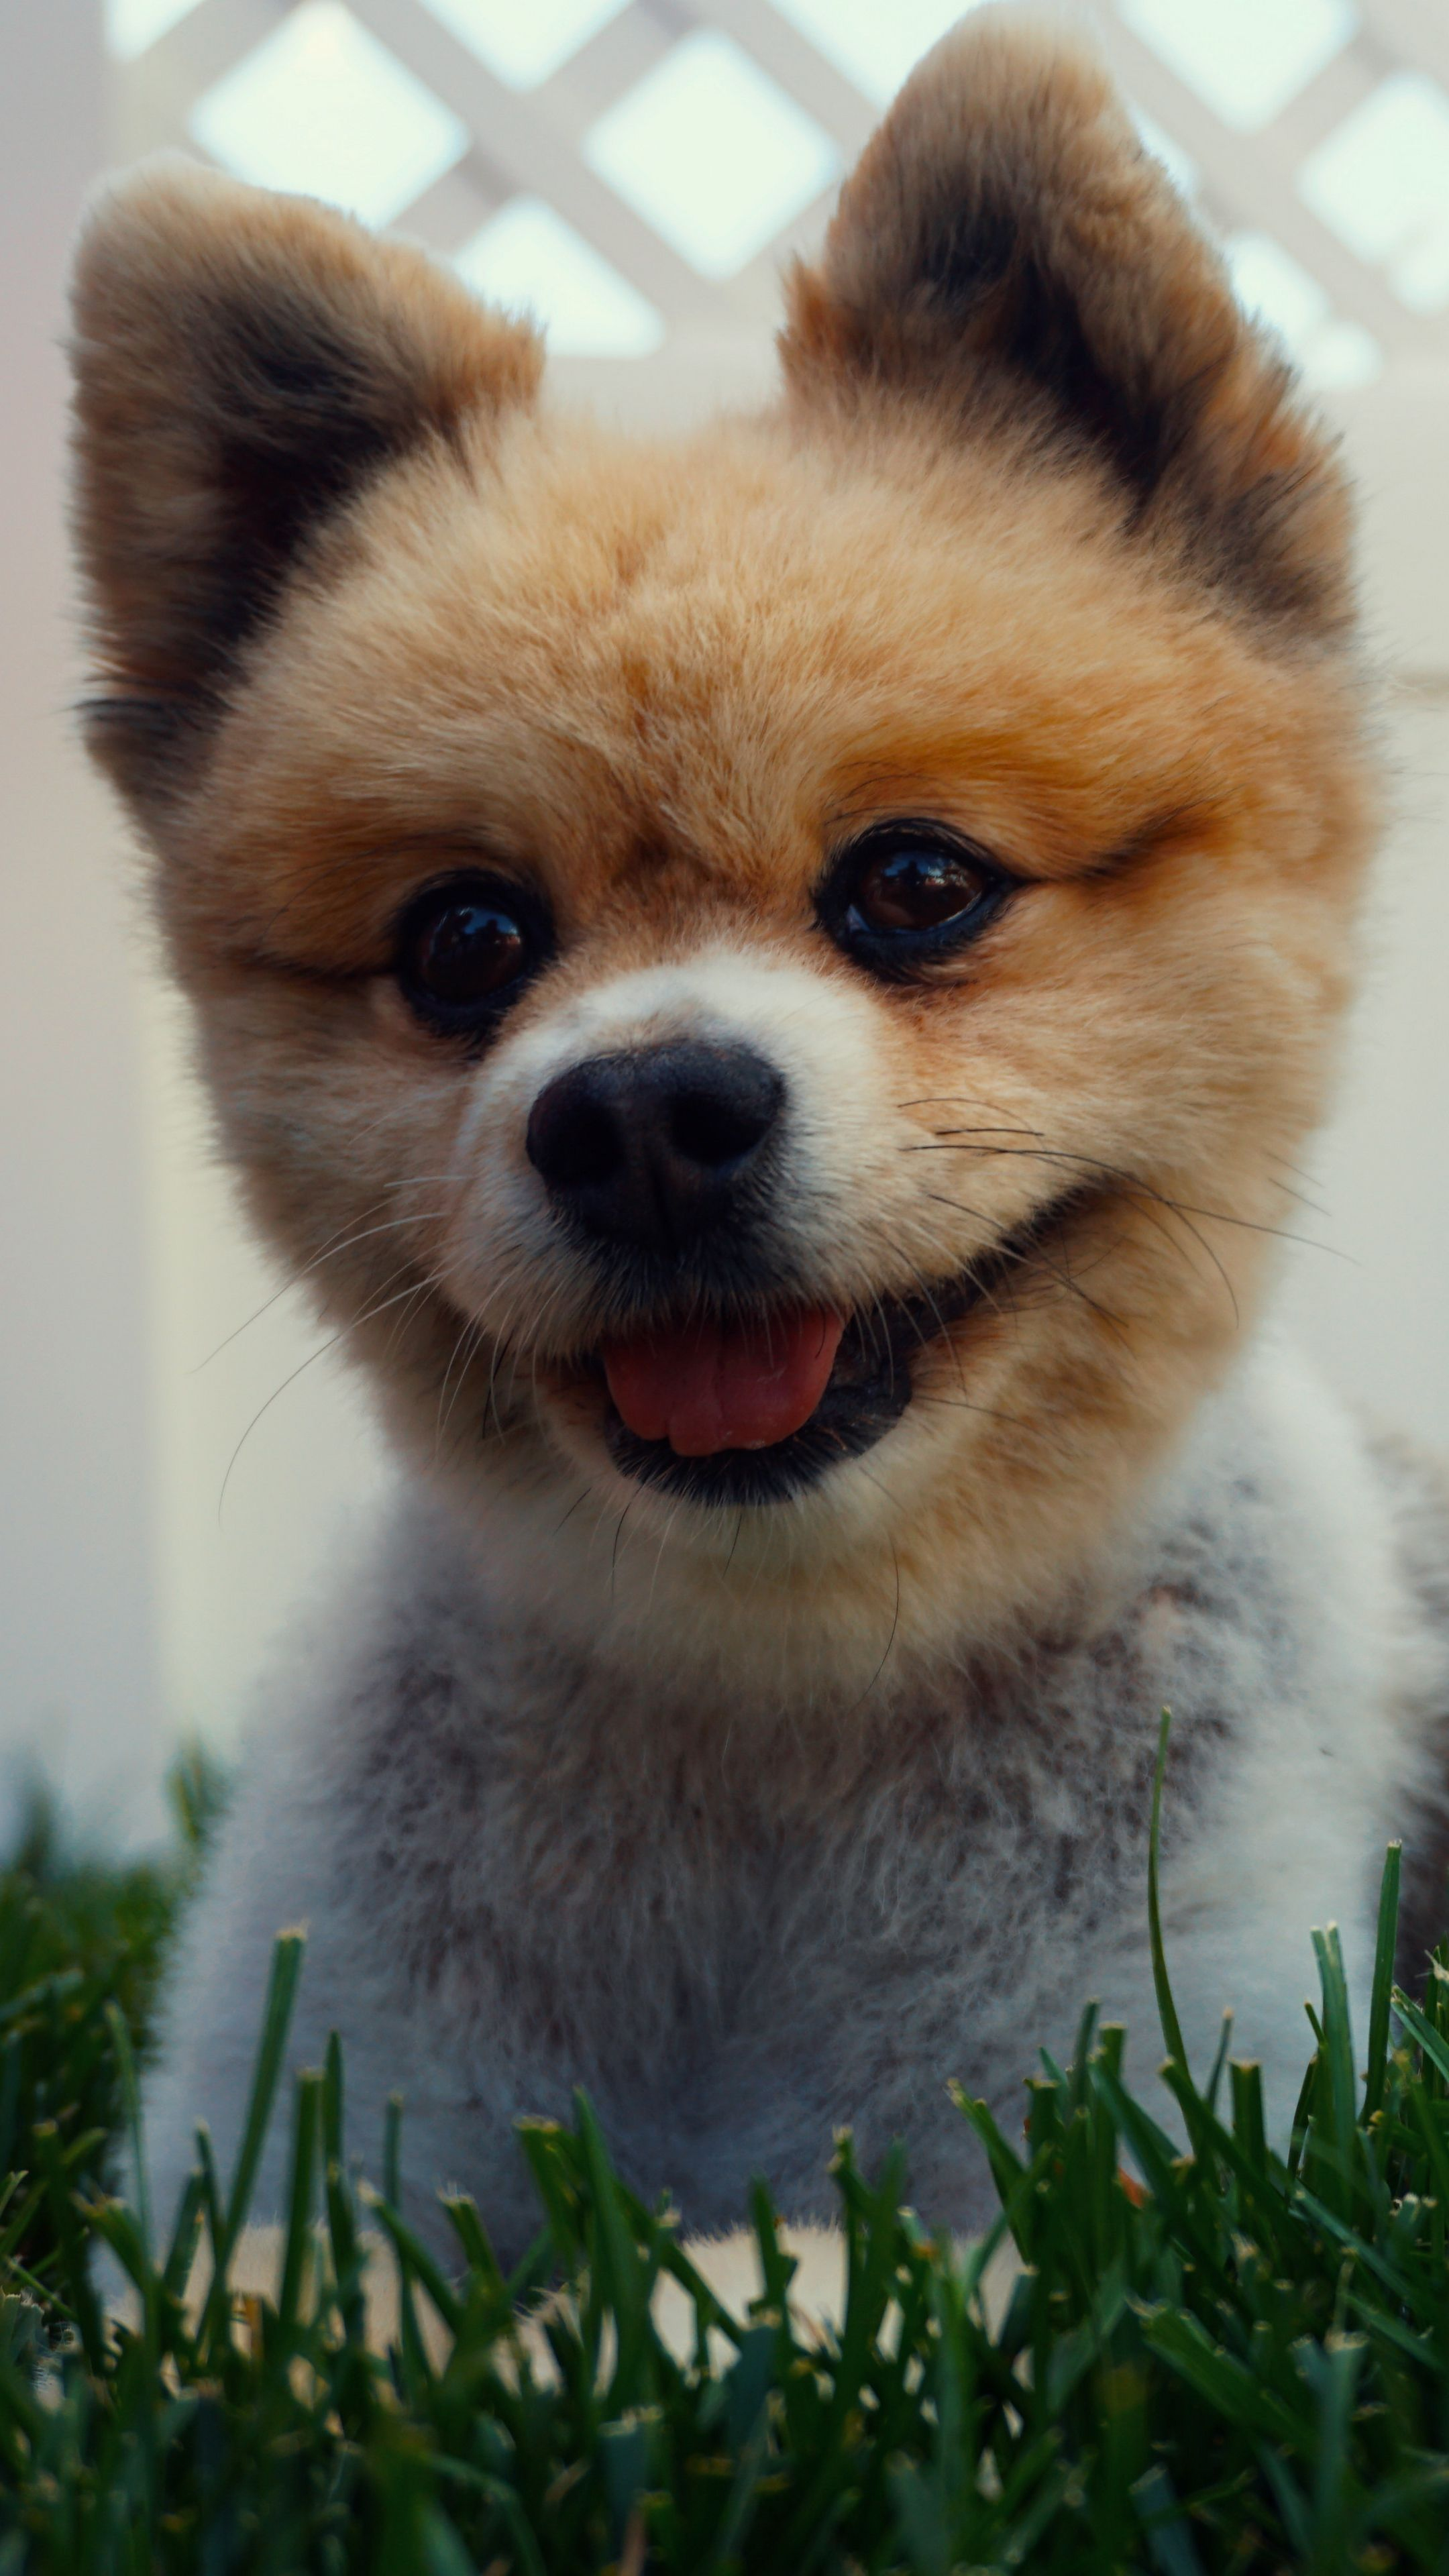 Animals Pomeranian Puppy Dog Wallpapers Hd 4k Background For Android Pets Animals Puppies Hd wallpaper pomeranian dog animal pet